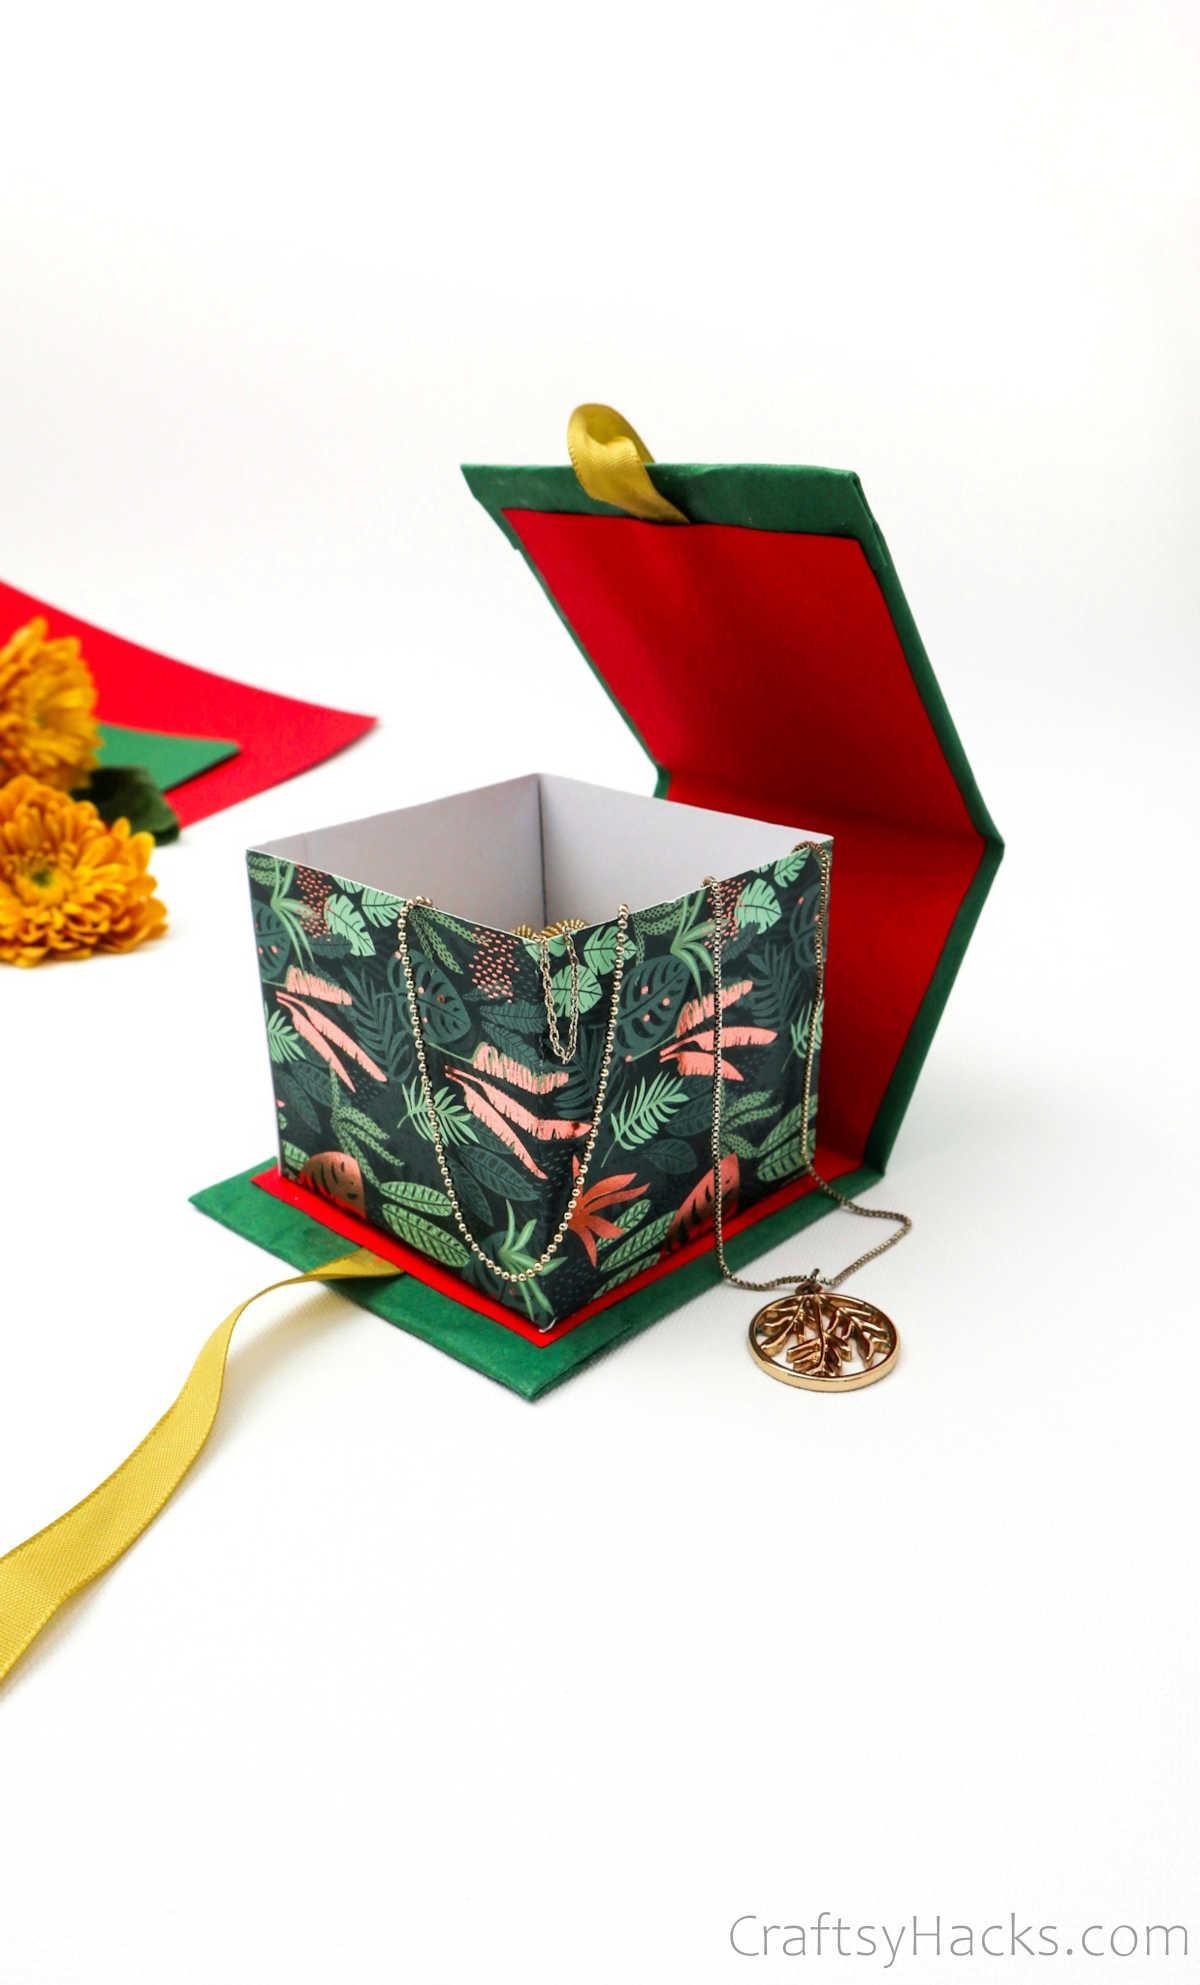 open gift box with jewelry